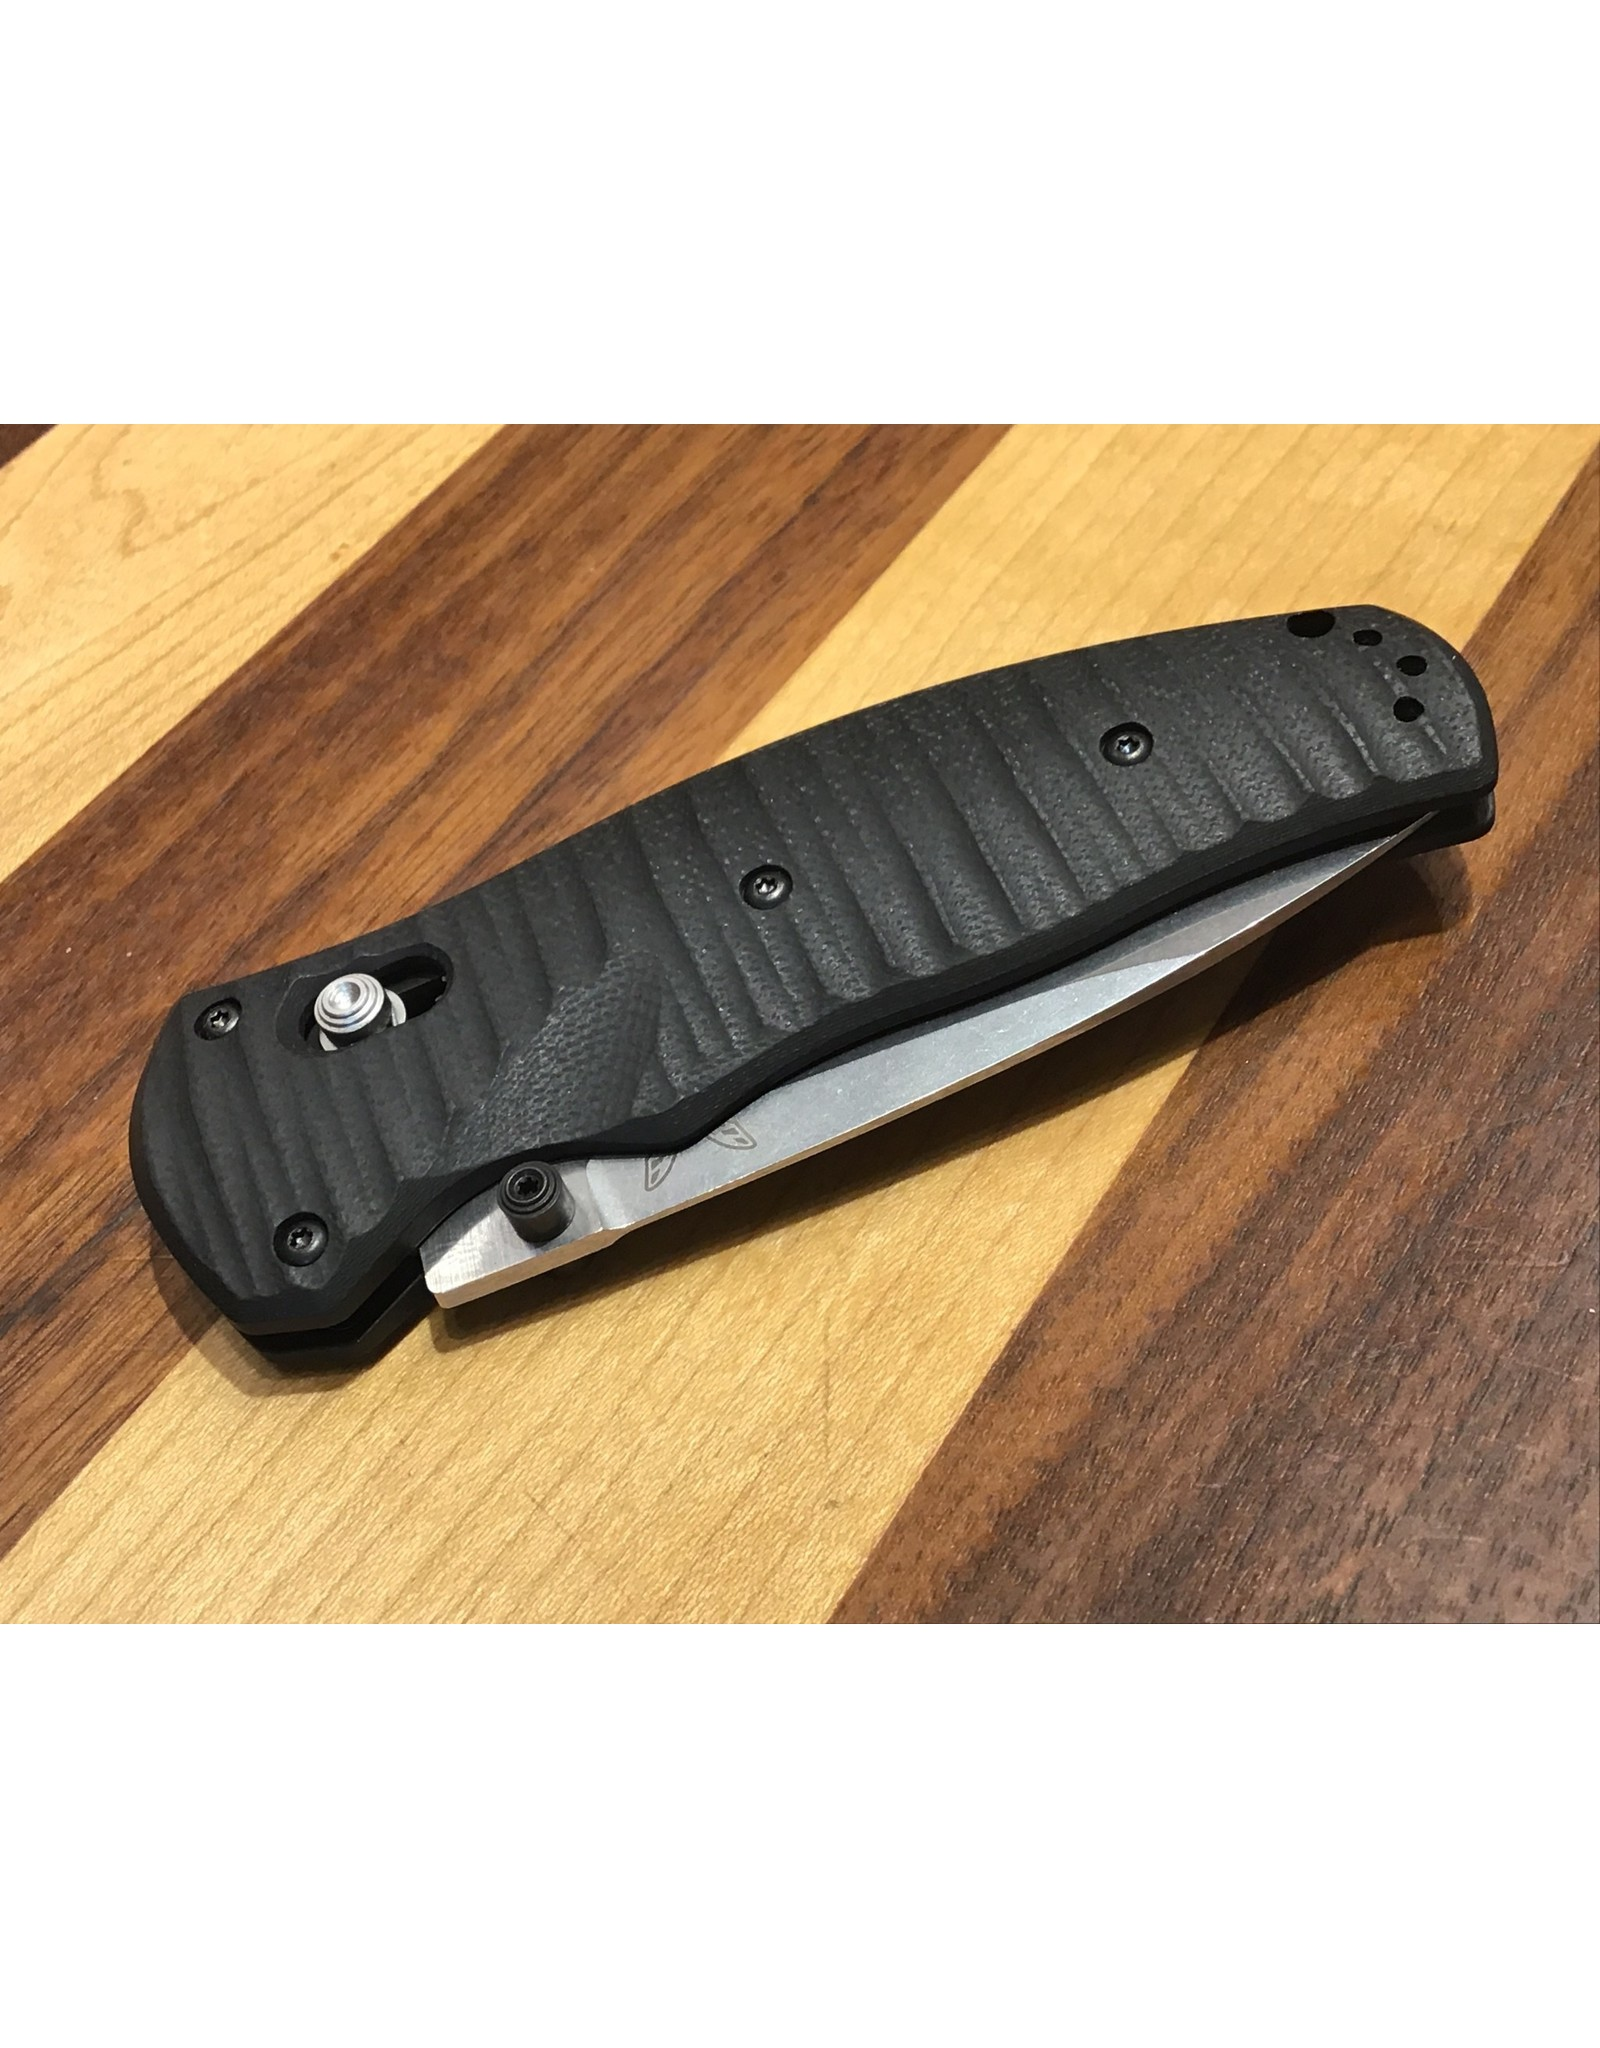 Benchmade Volli 1000001 Drop Point Spring Assisted Folding Knife